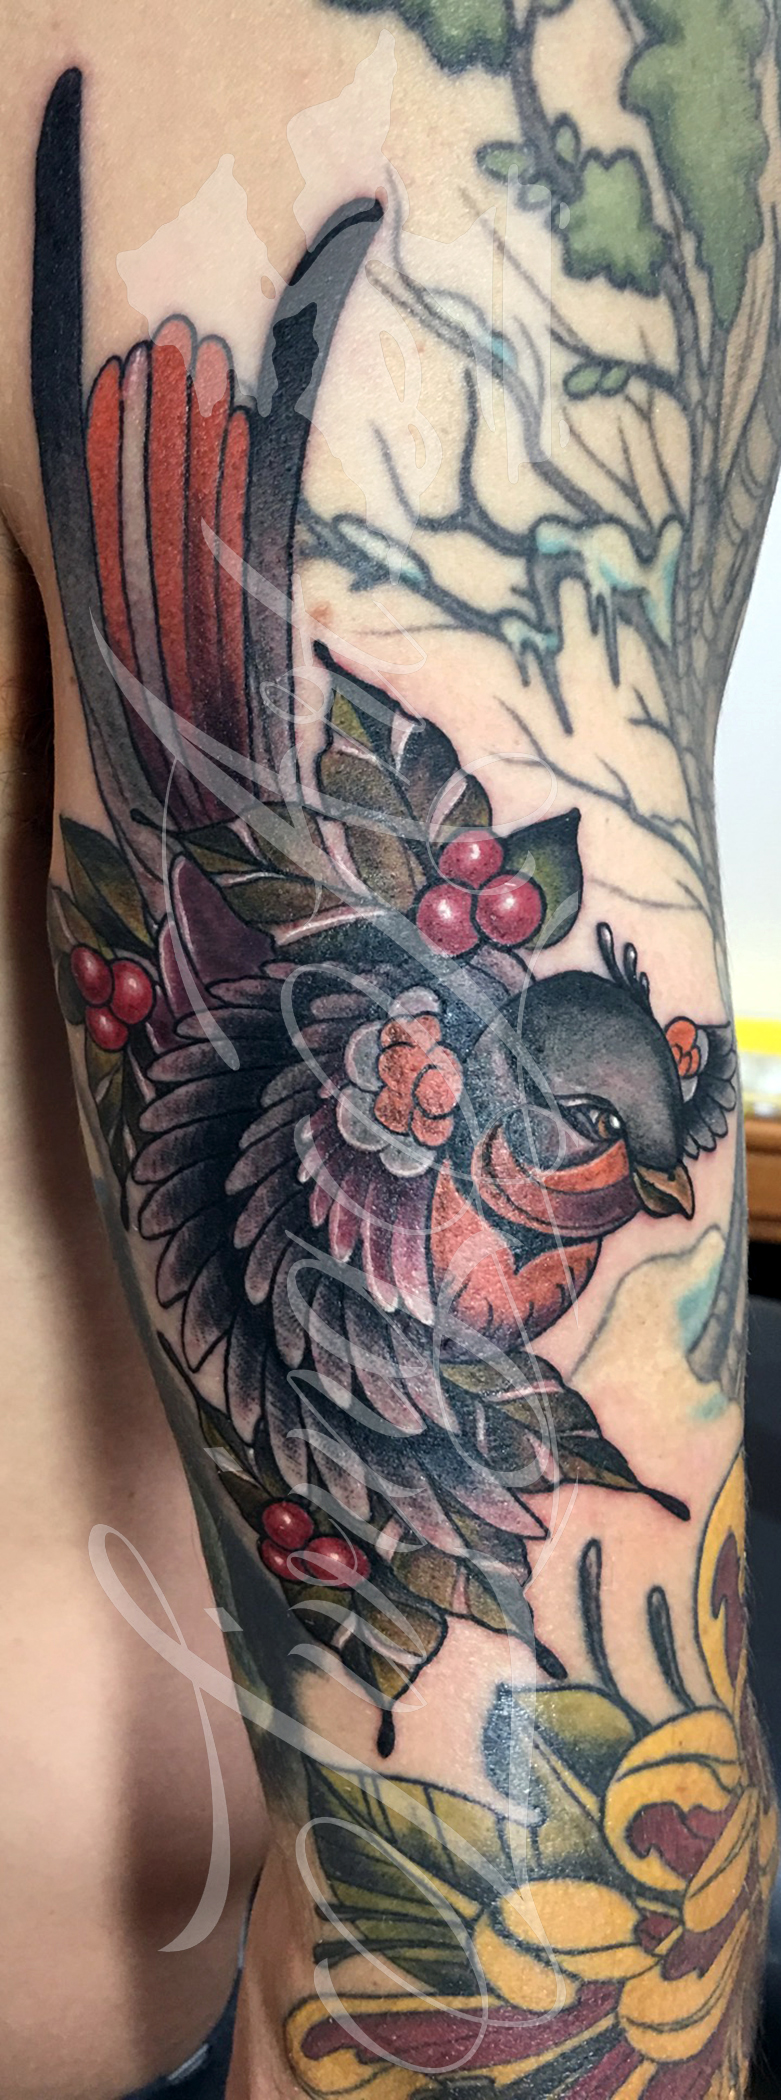 chris owen tattoo_neo traditionla bird tattoo_robin tattoo_sparrow tattoo.jpg